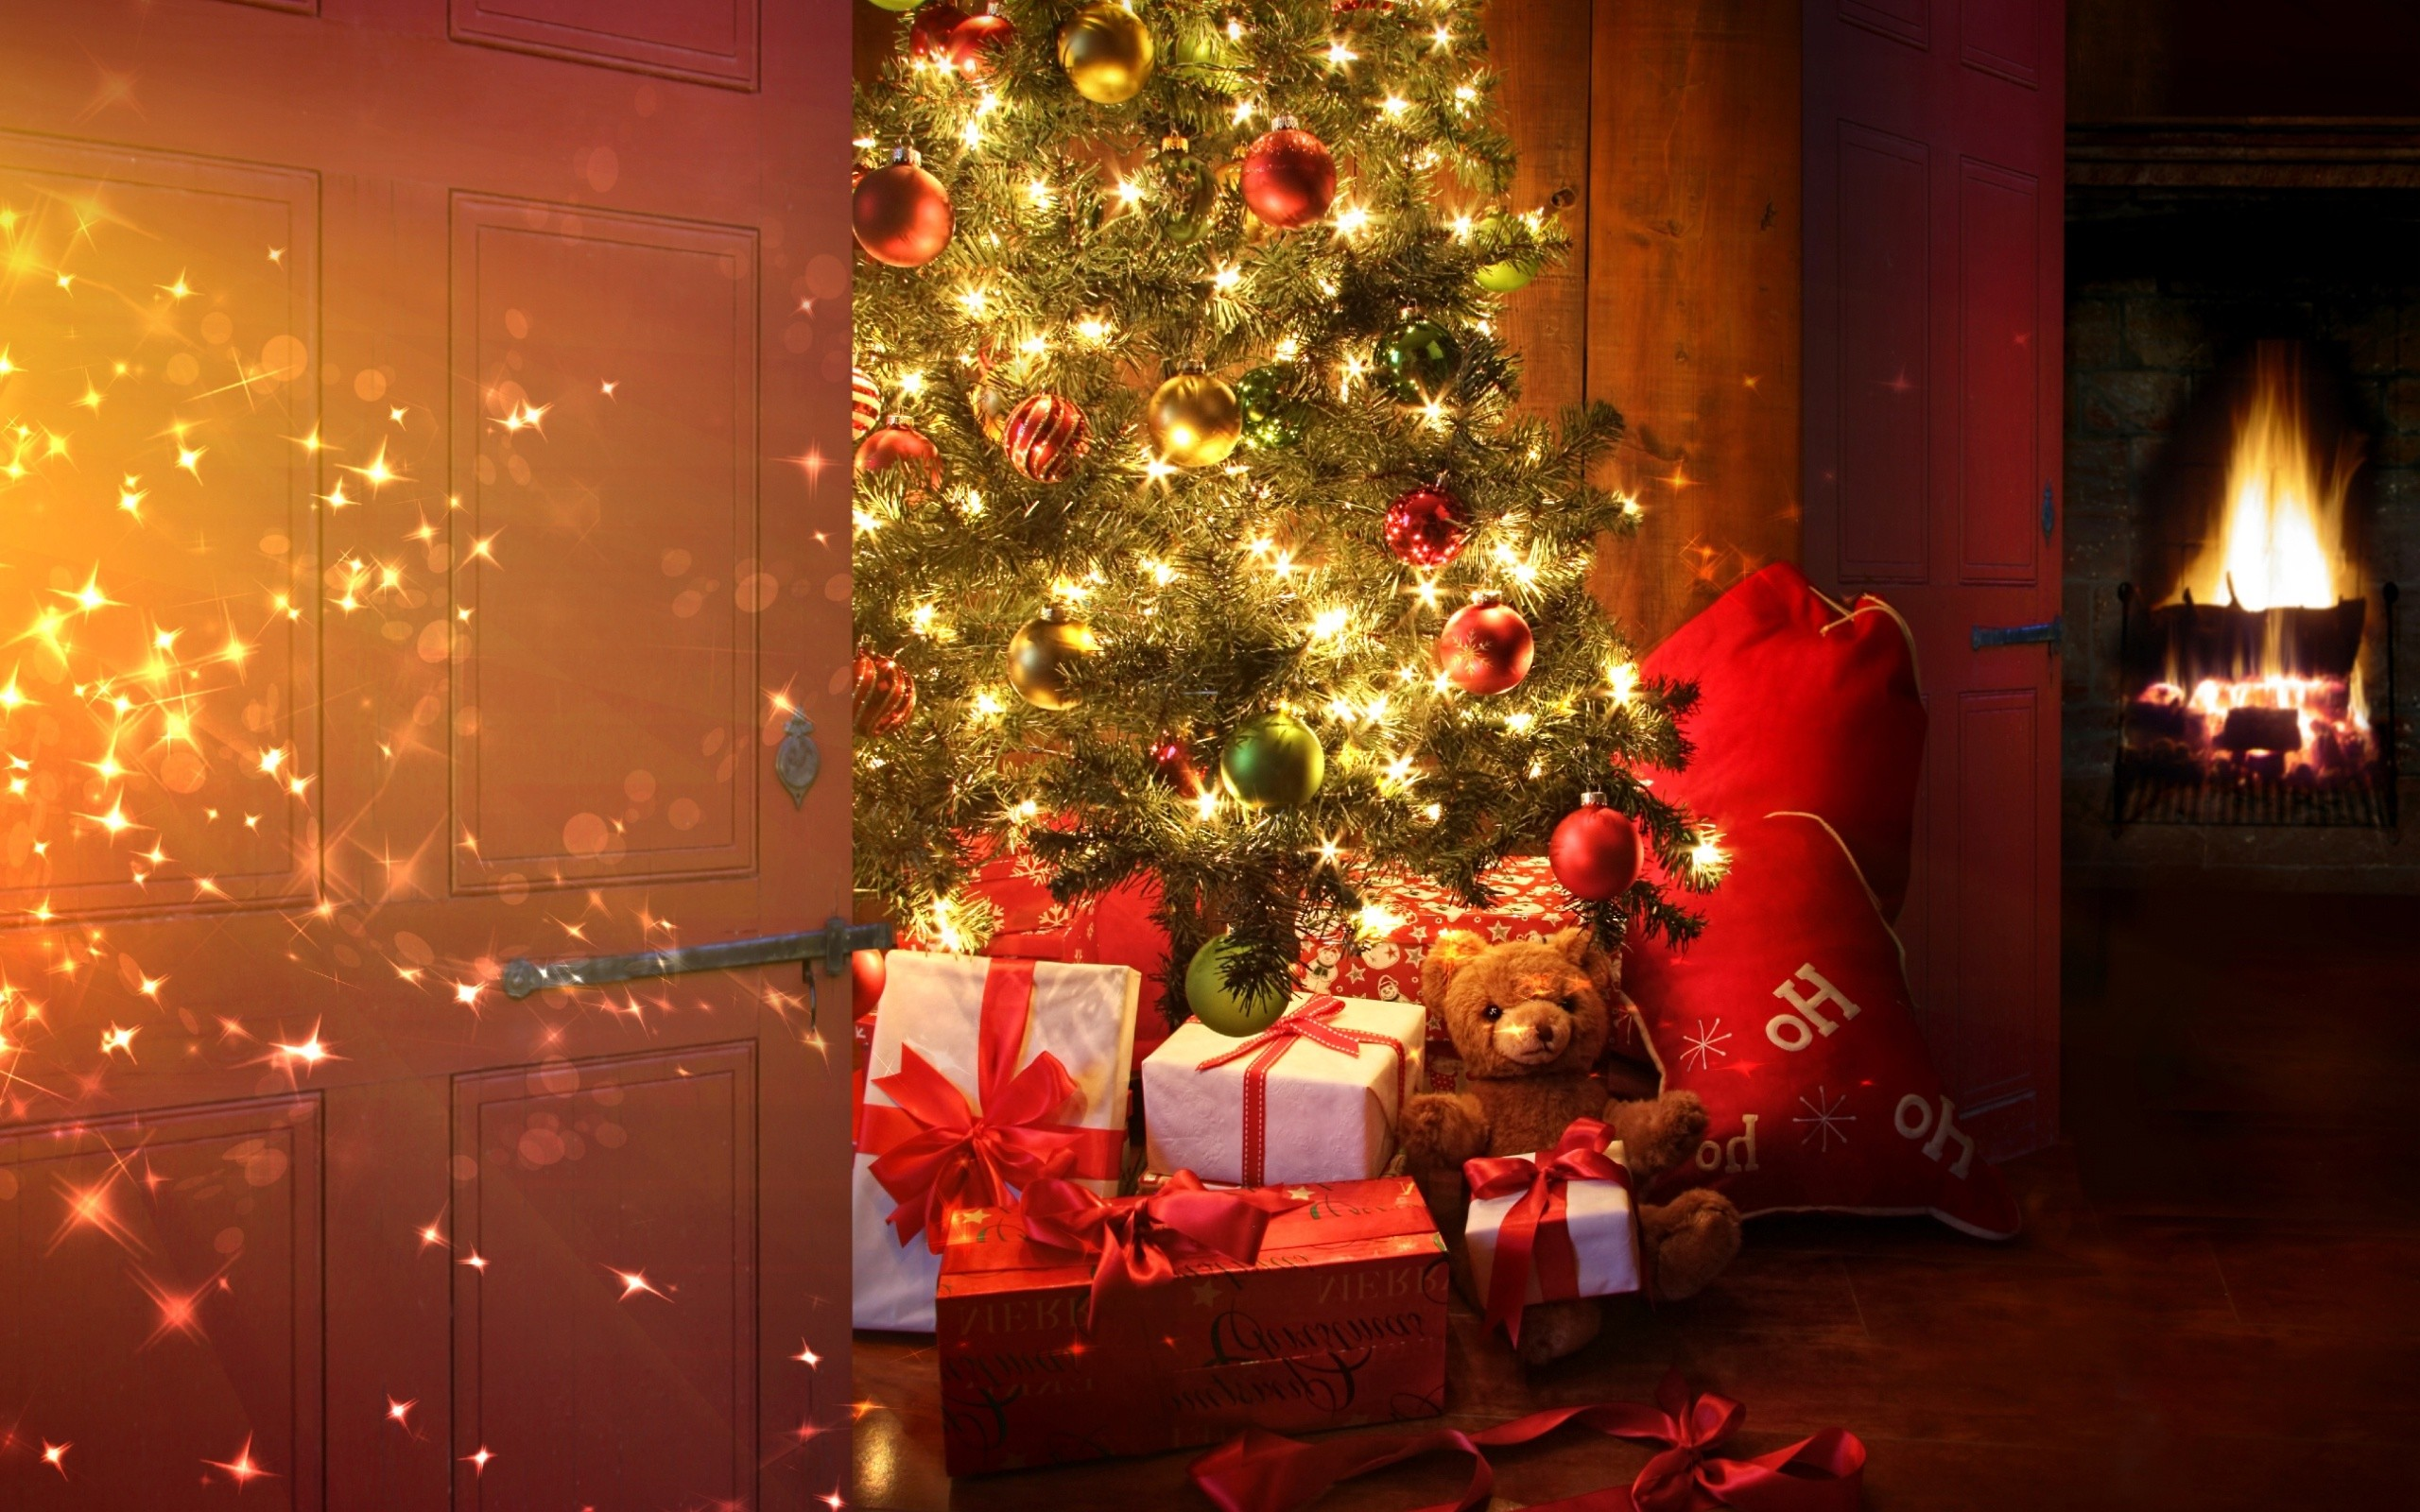 Res: 2560x1600, Christmas Tree With Presents Wallpaper